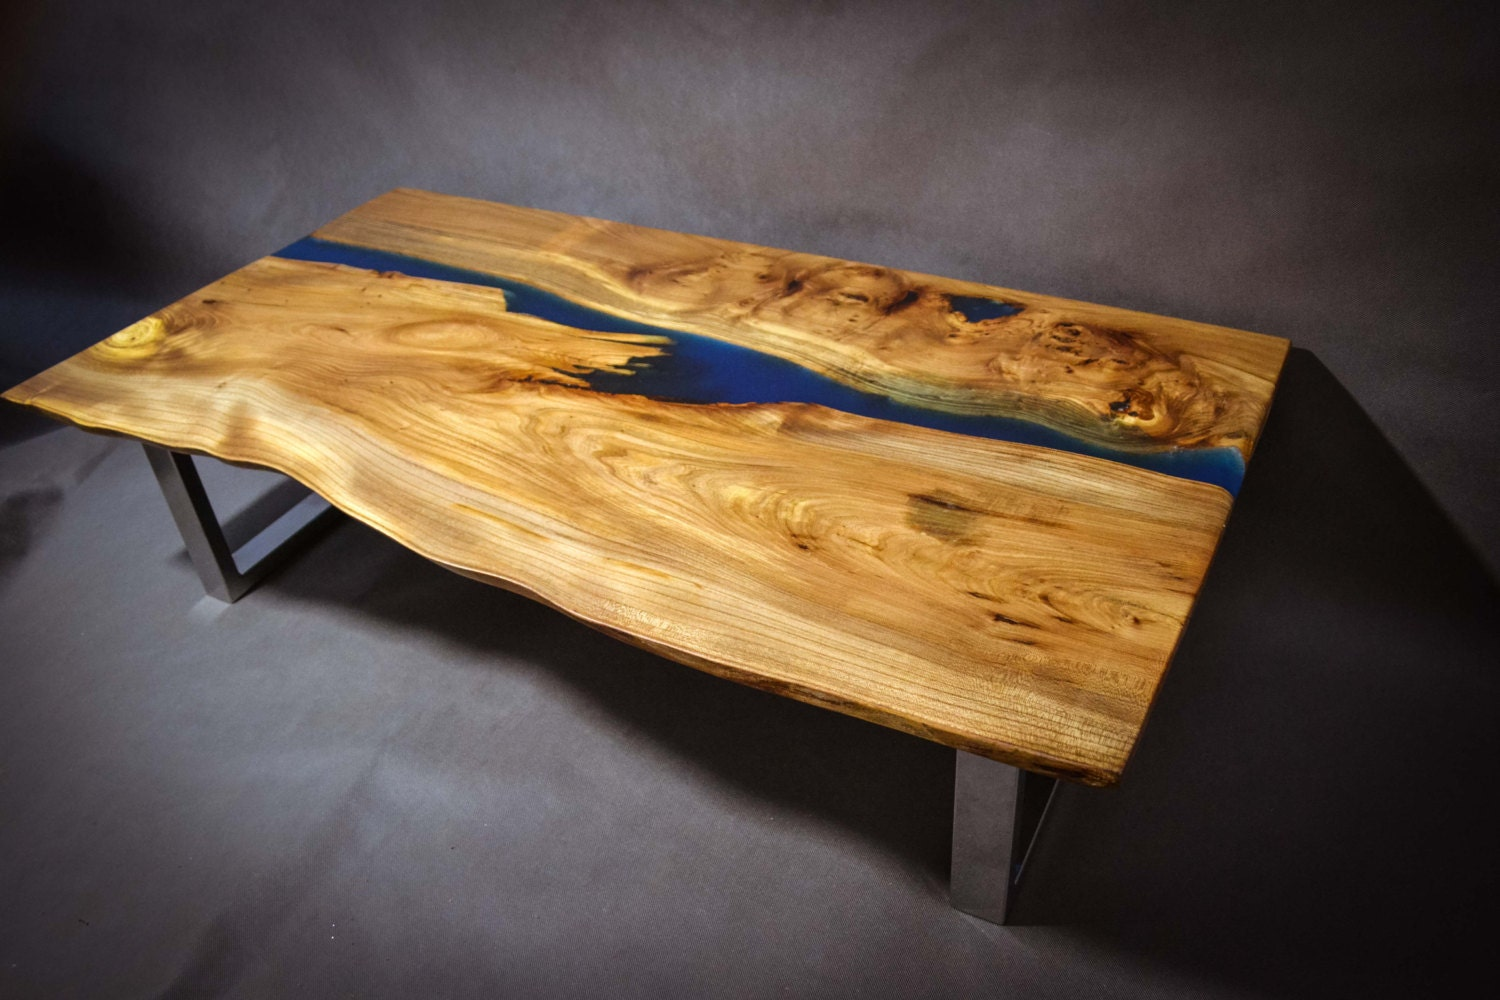 Poco Resina Live Edge Elm Wood Slab By FrancesBradleyDesign